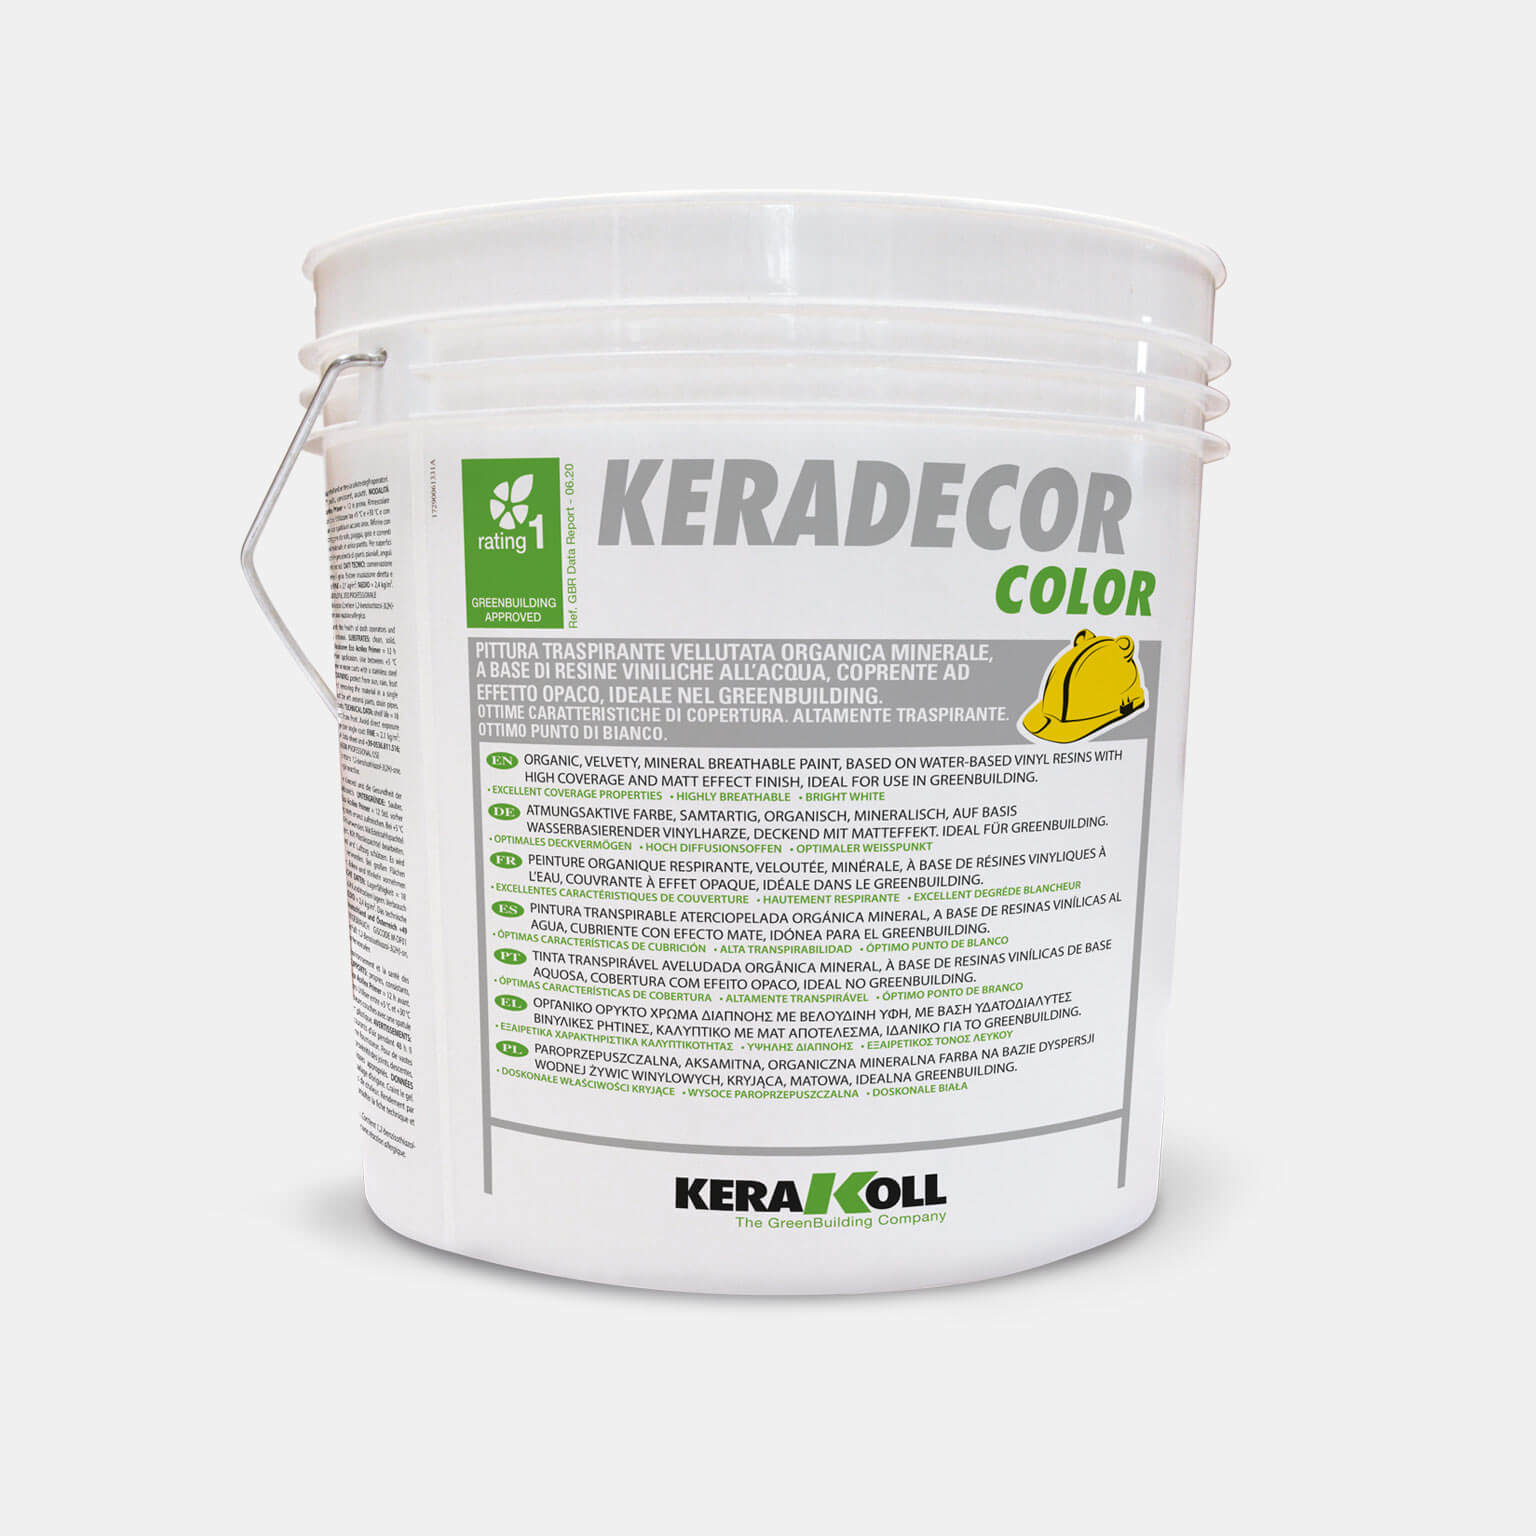 Keradecor color rating 1